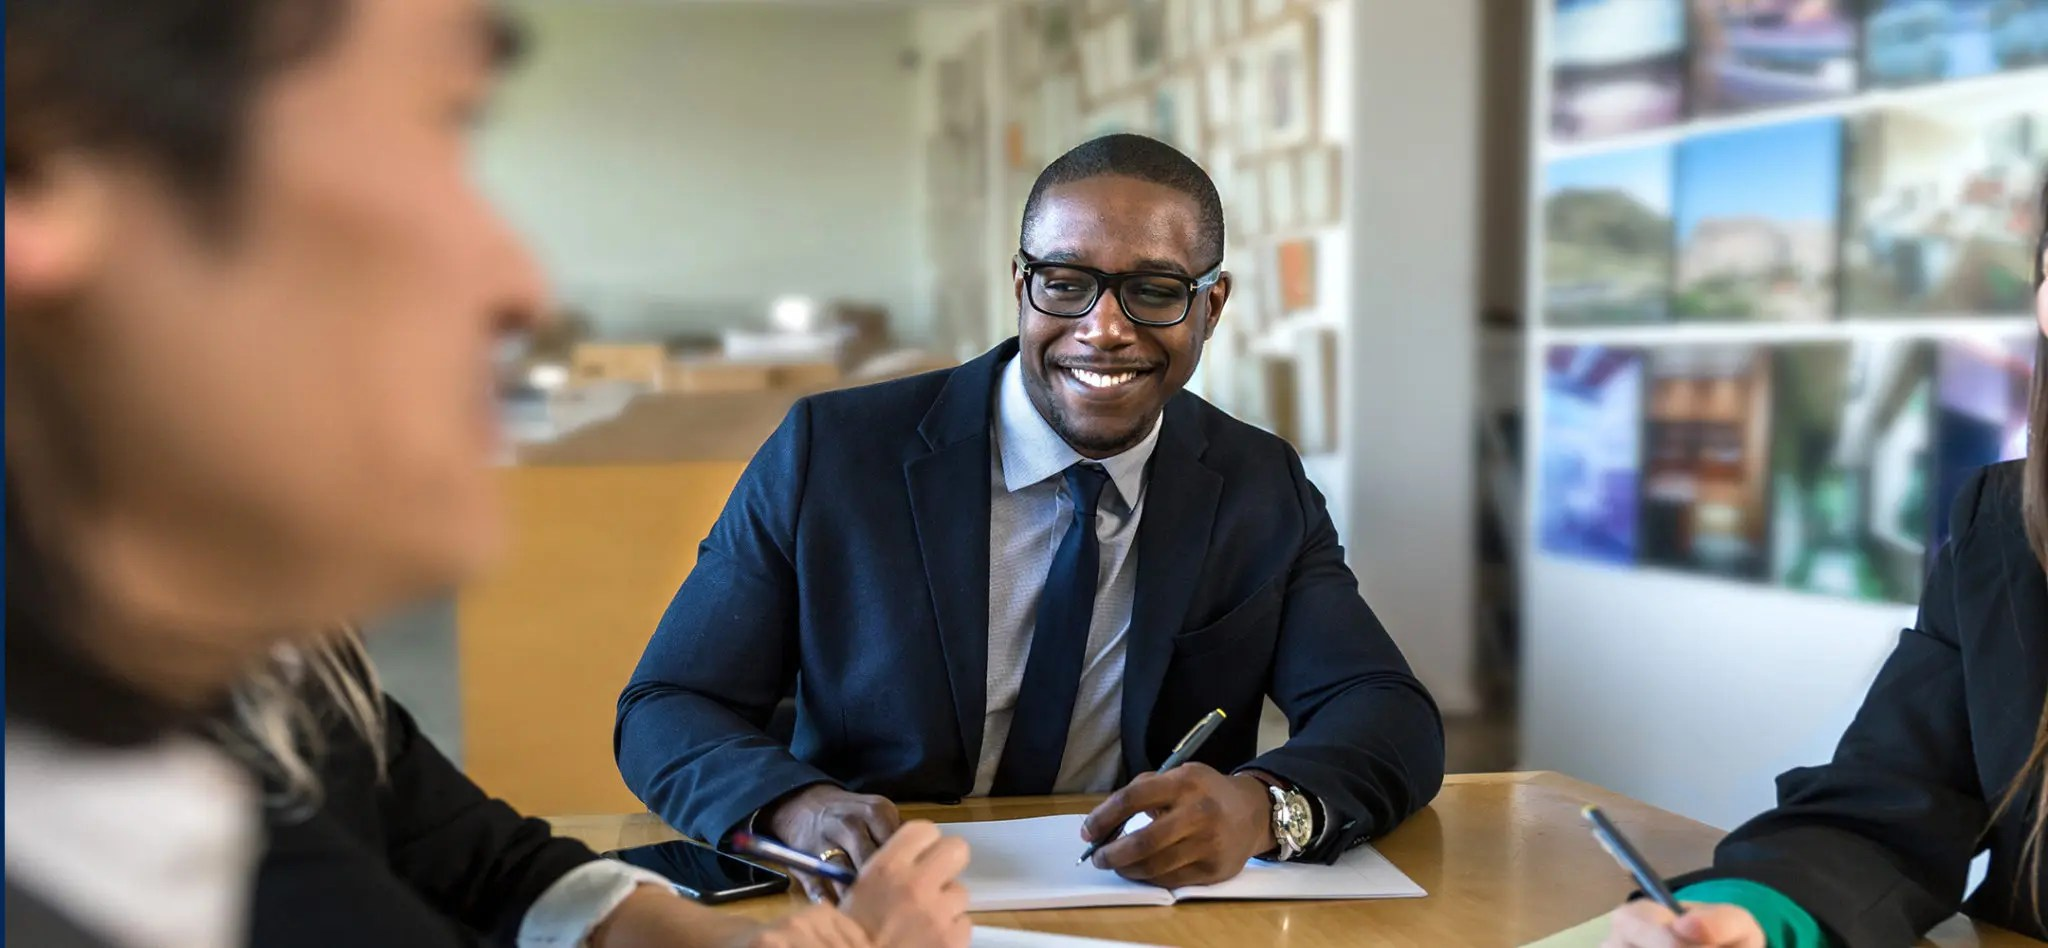 African American executive businessman at work after earning a MBA degree.